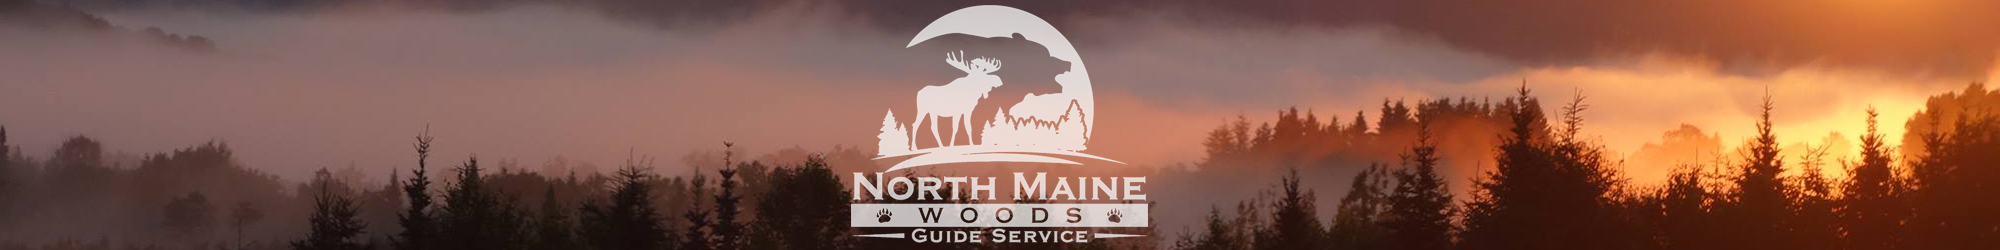 North Maine Woods Guide Service